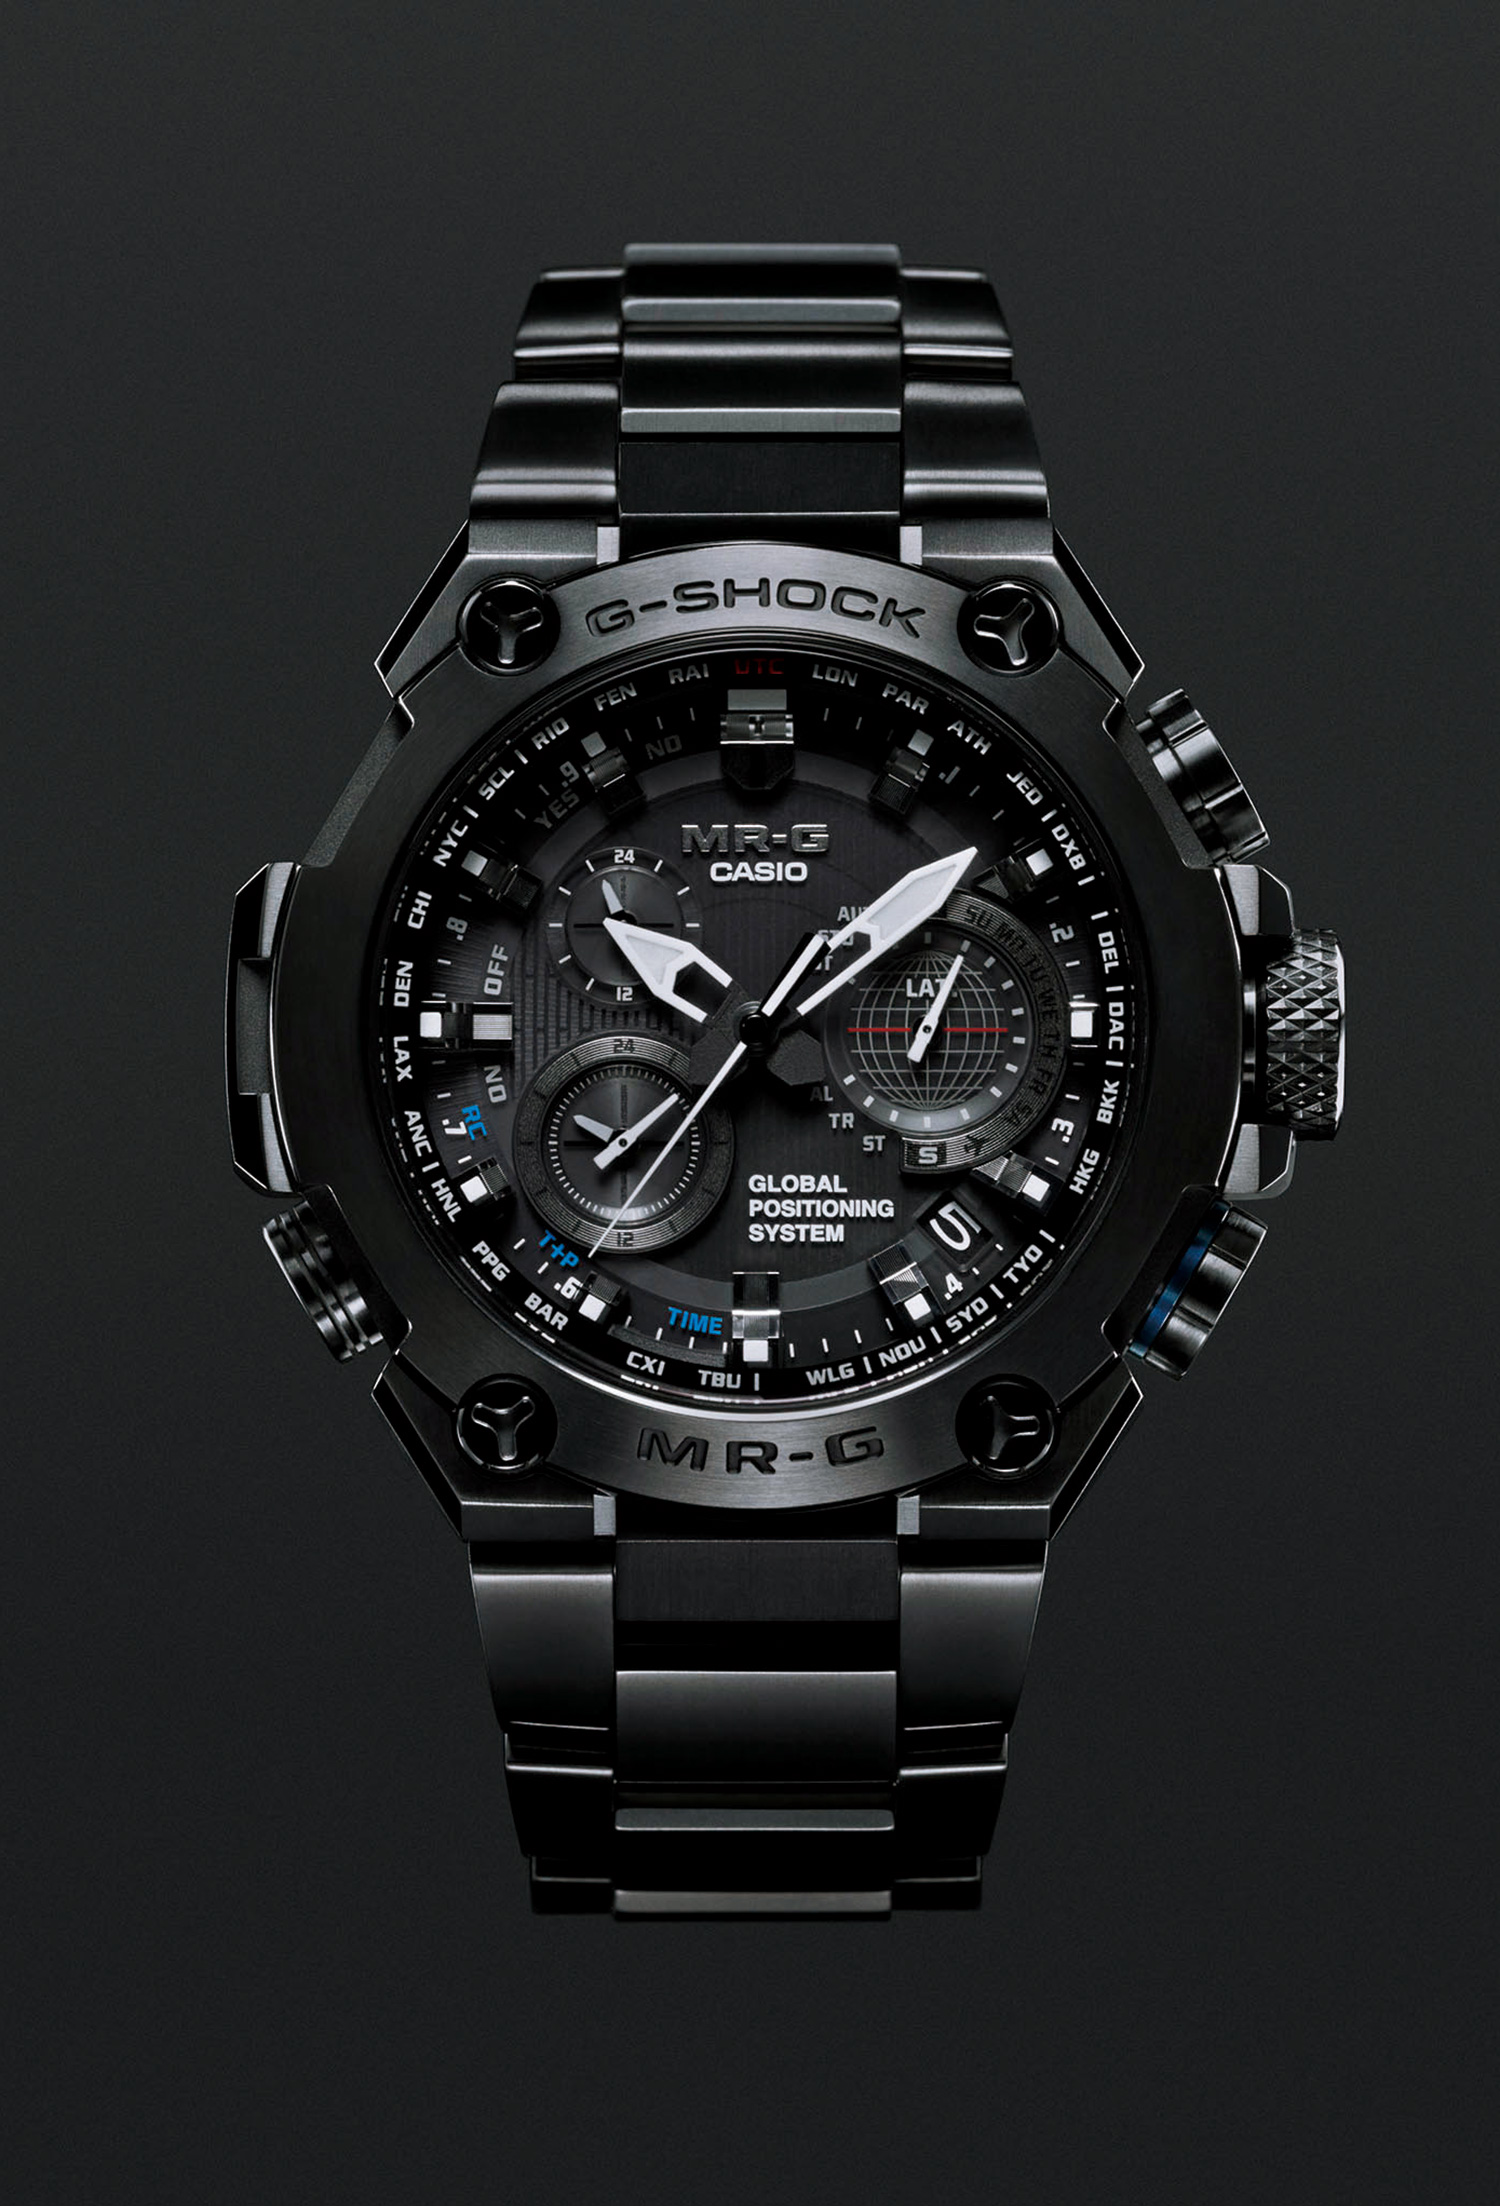 Cortina watch price range